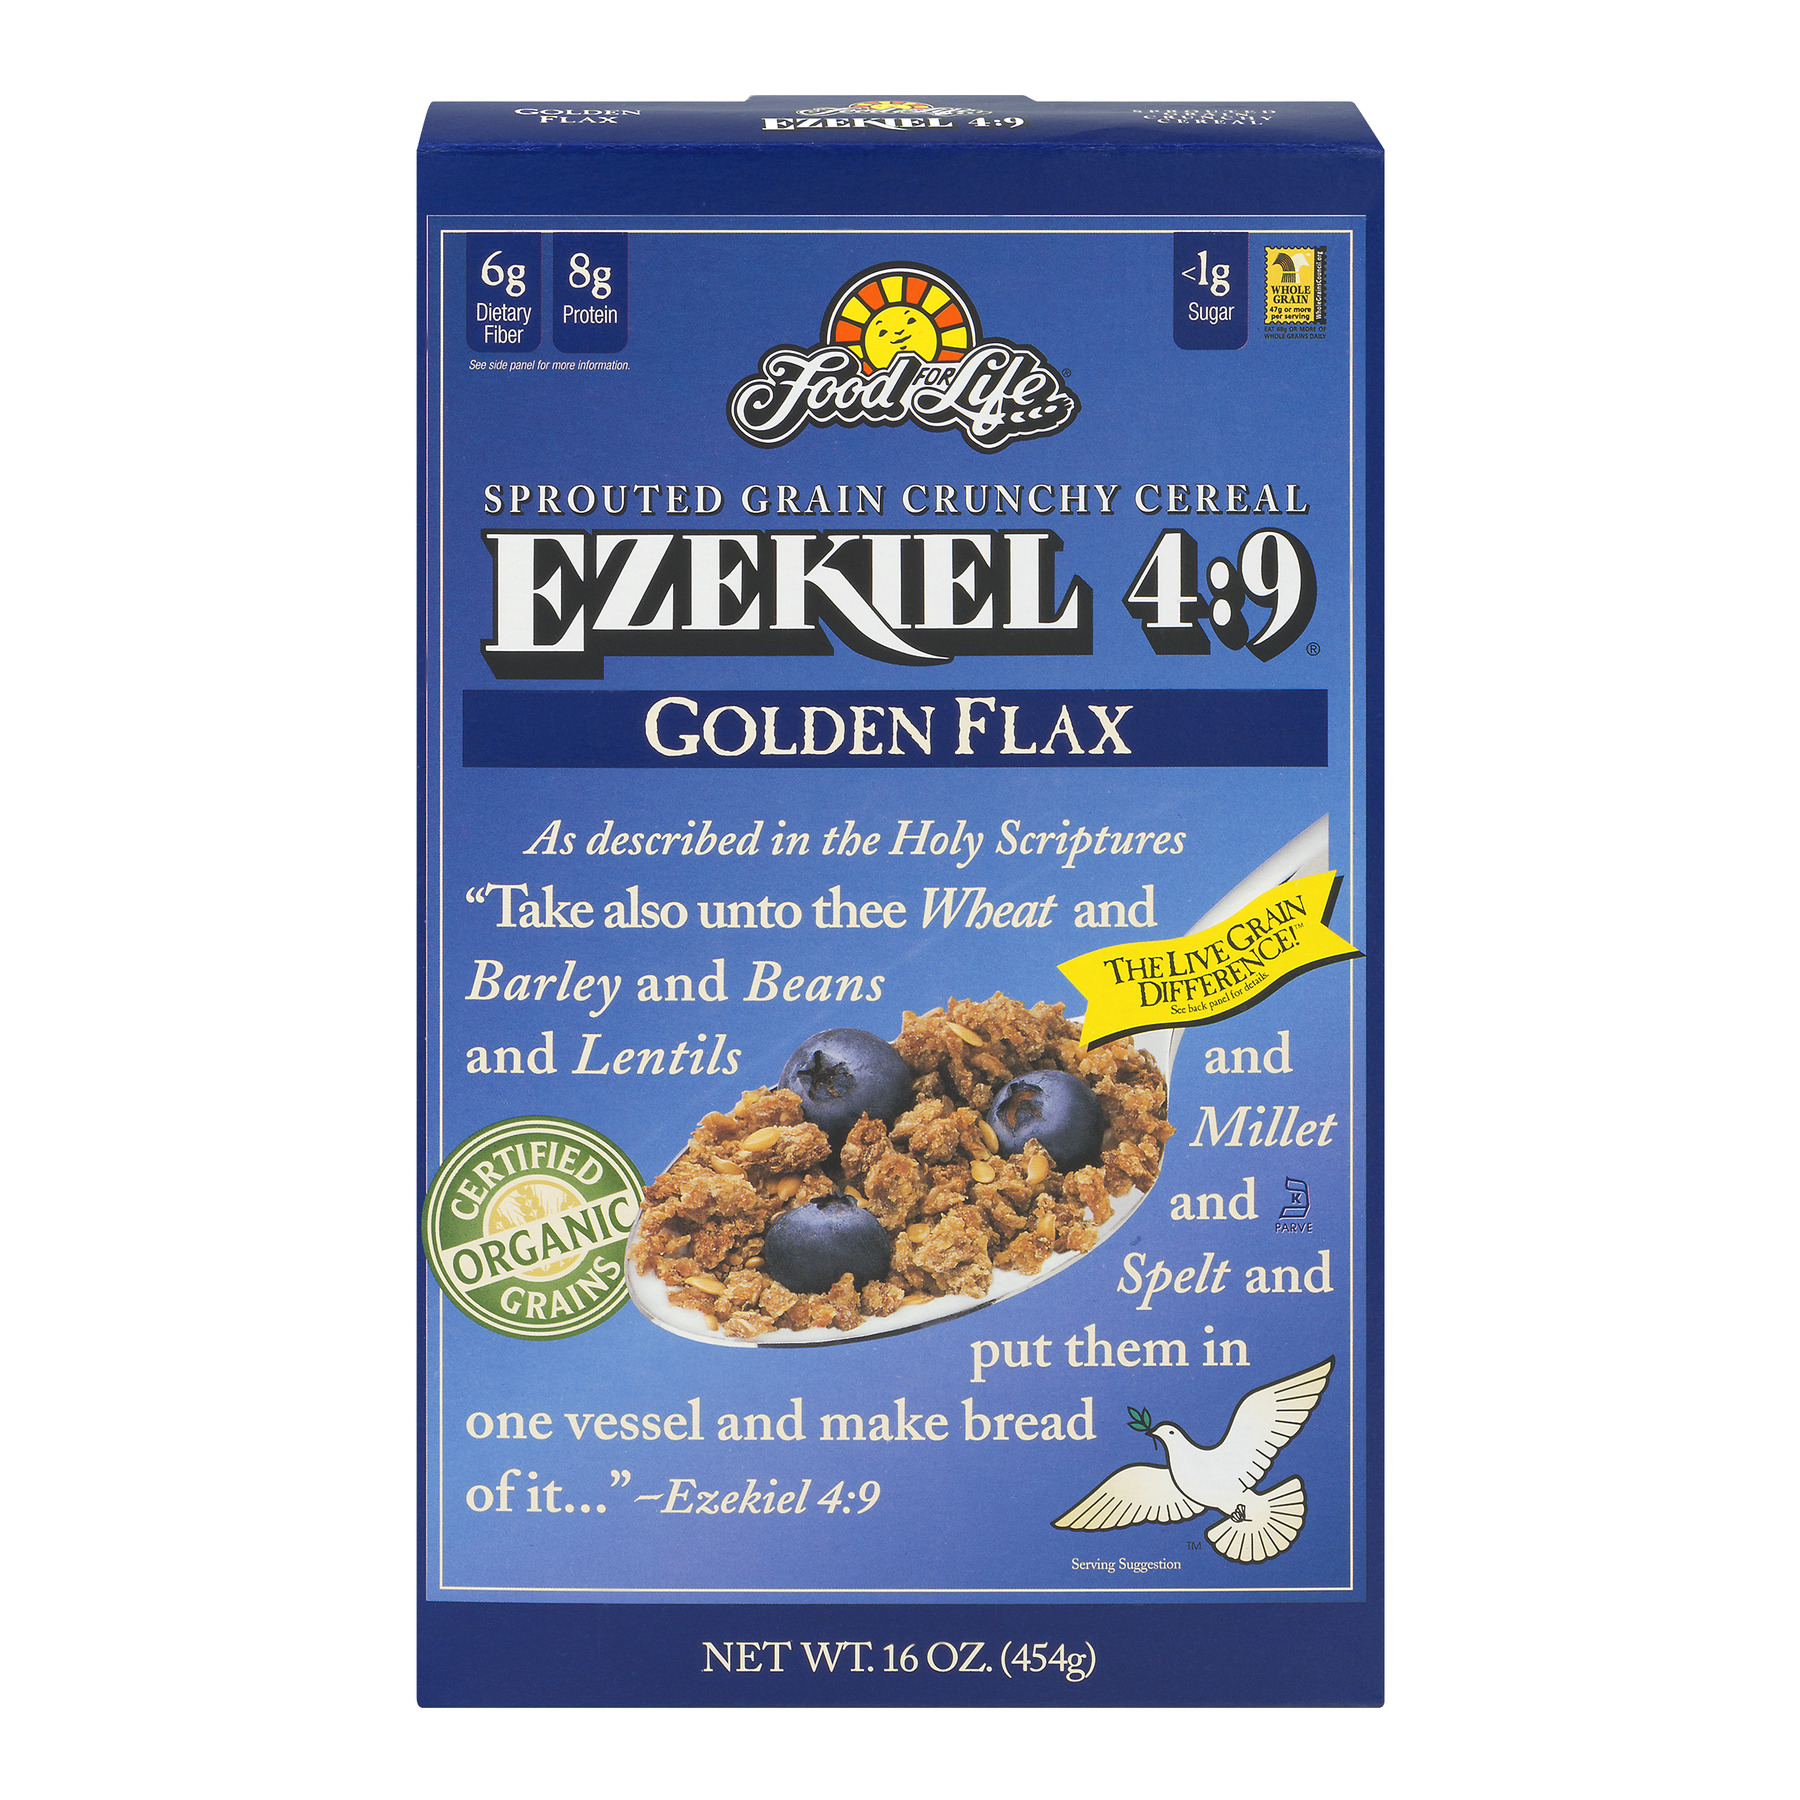 Food For Life Ezekiel 4:9 Sprouted Whole Grain Crunchy Cereal Golden Flax, 16.0 OZ